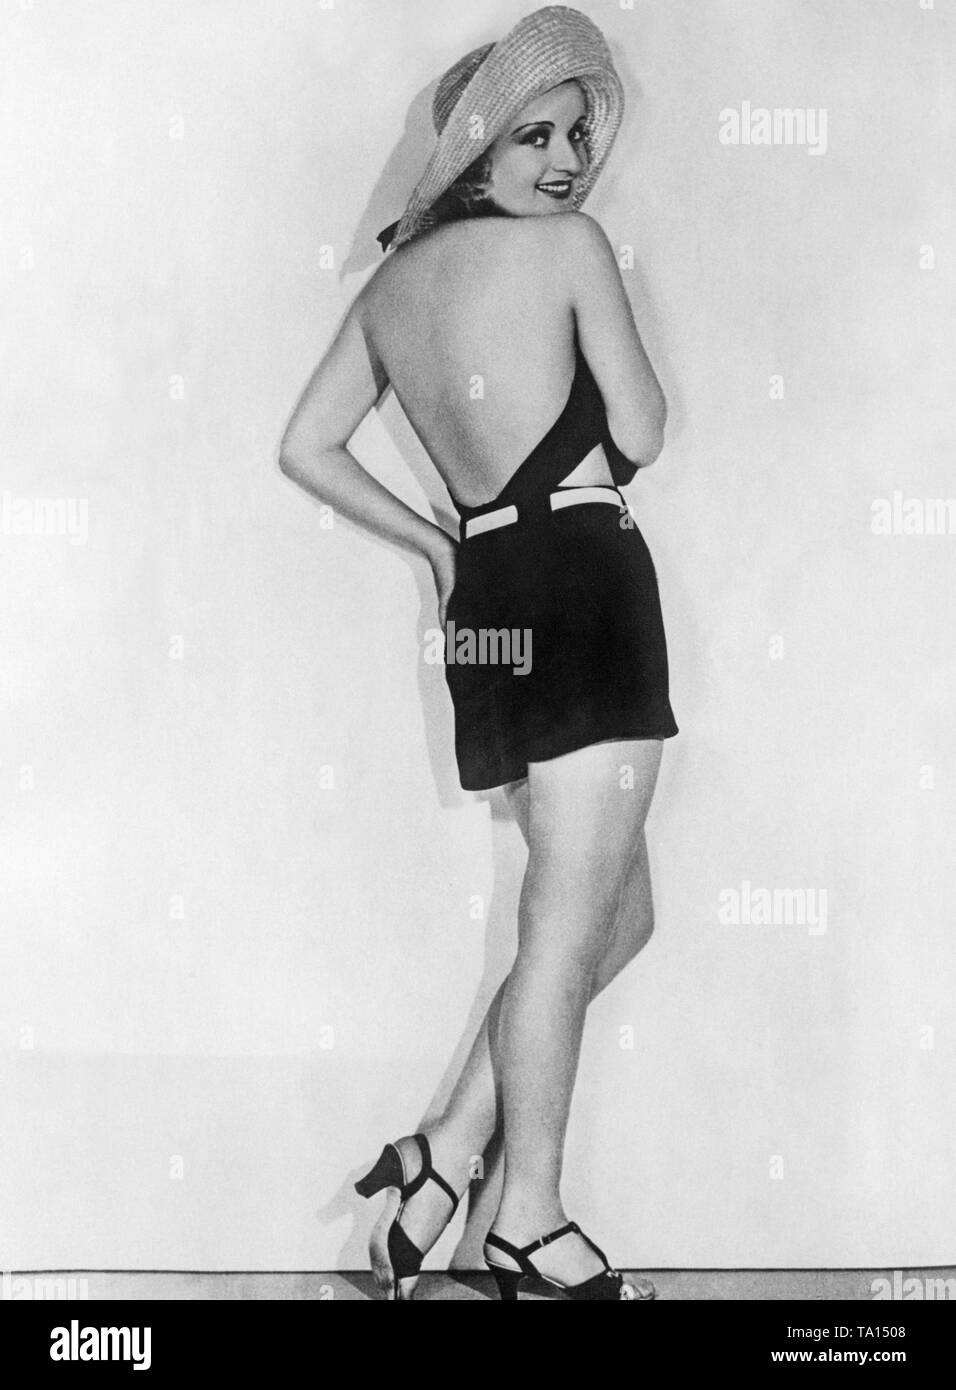 A woman posing in a 1930s style backless swimsuit. - Stock Image